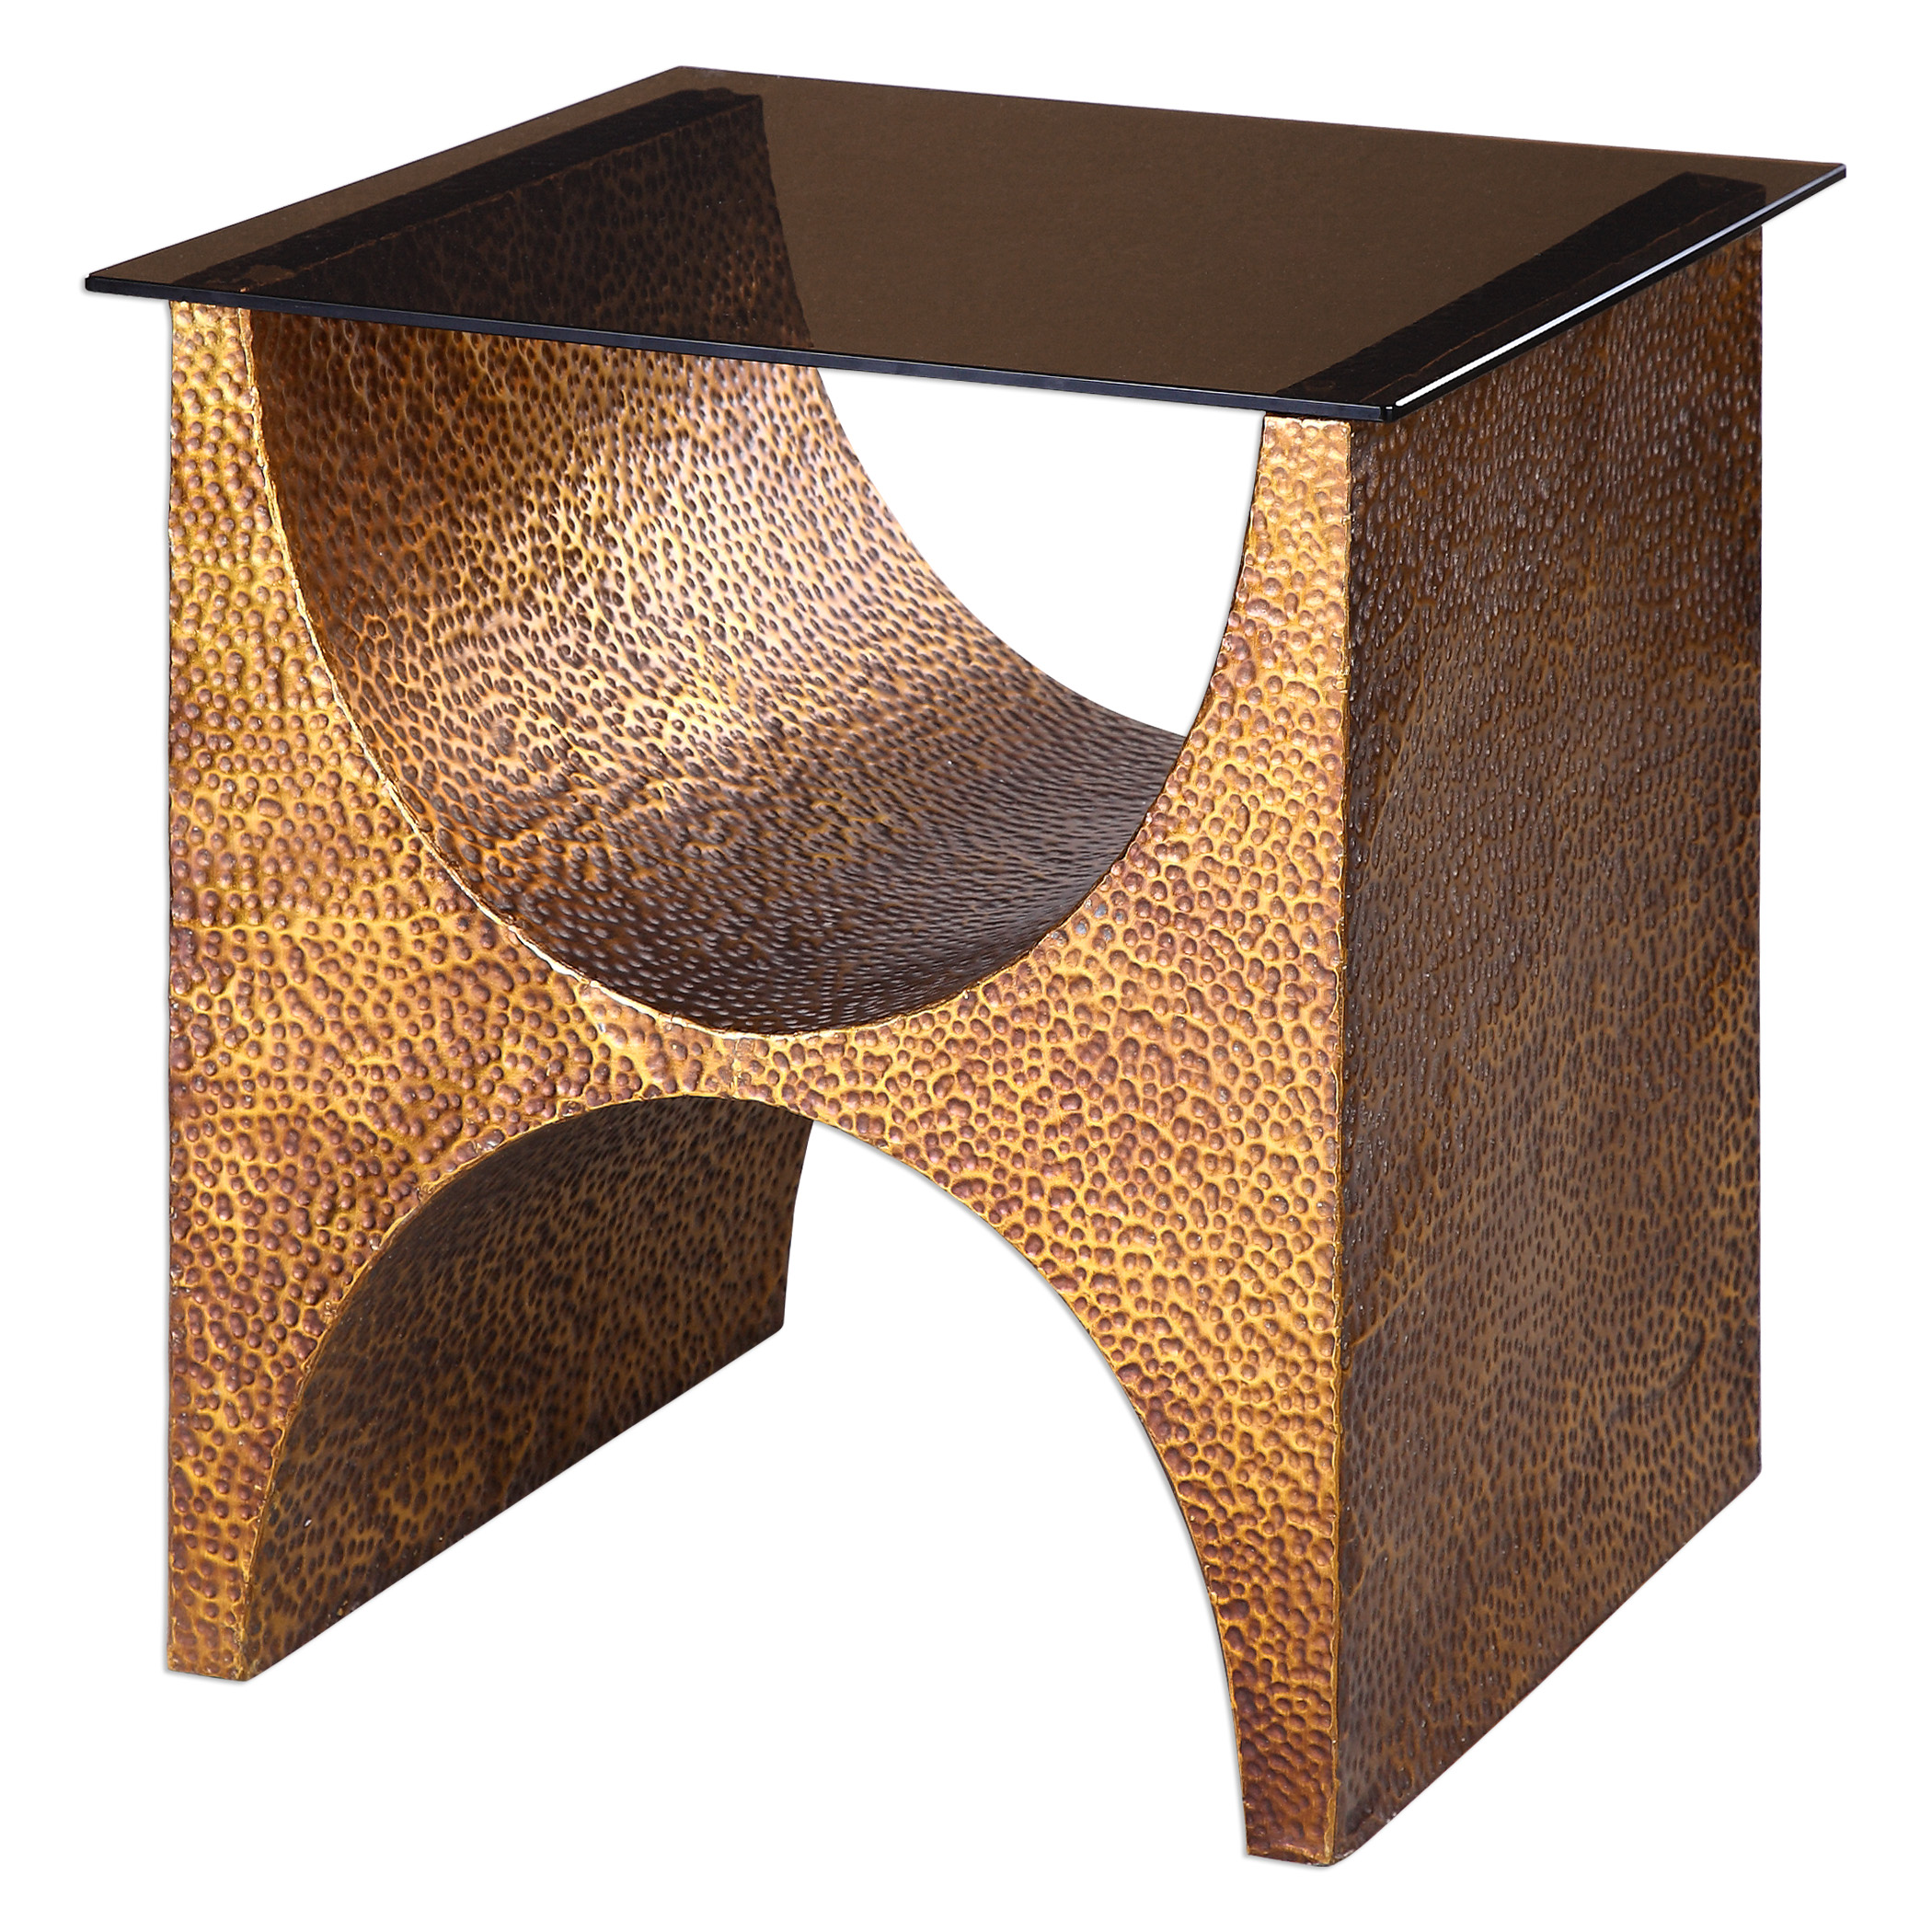 Uttermost Accent Furniture Rafaele Copper Accent Table - Item Number: 24618